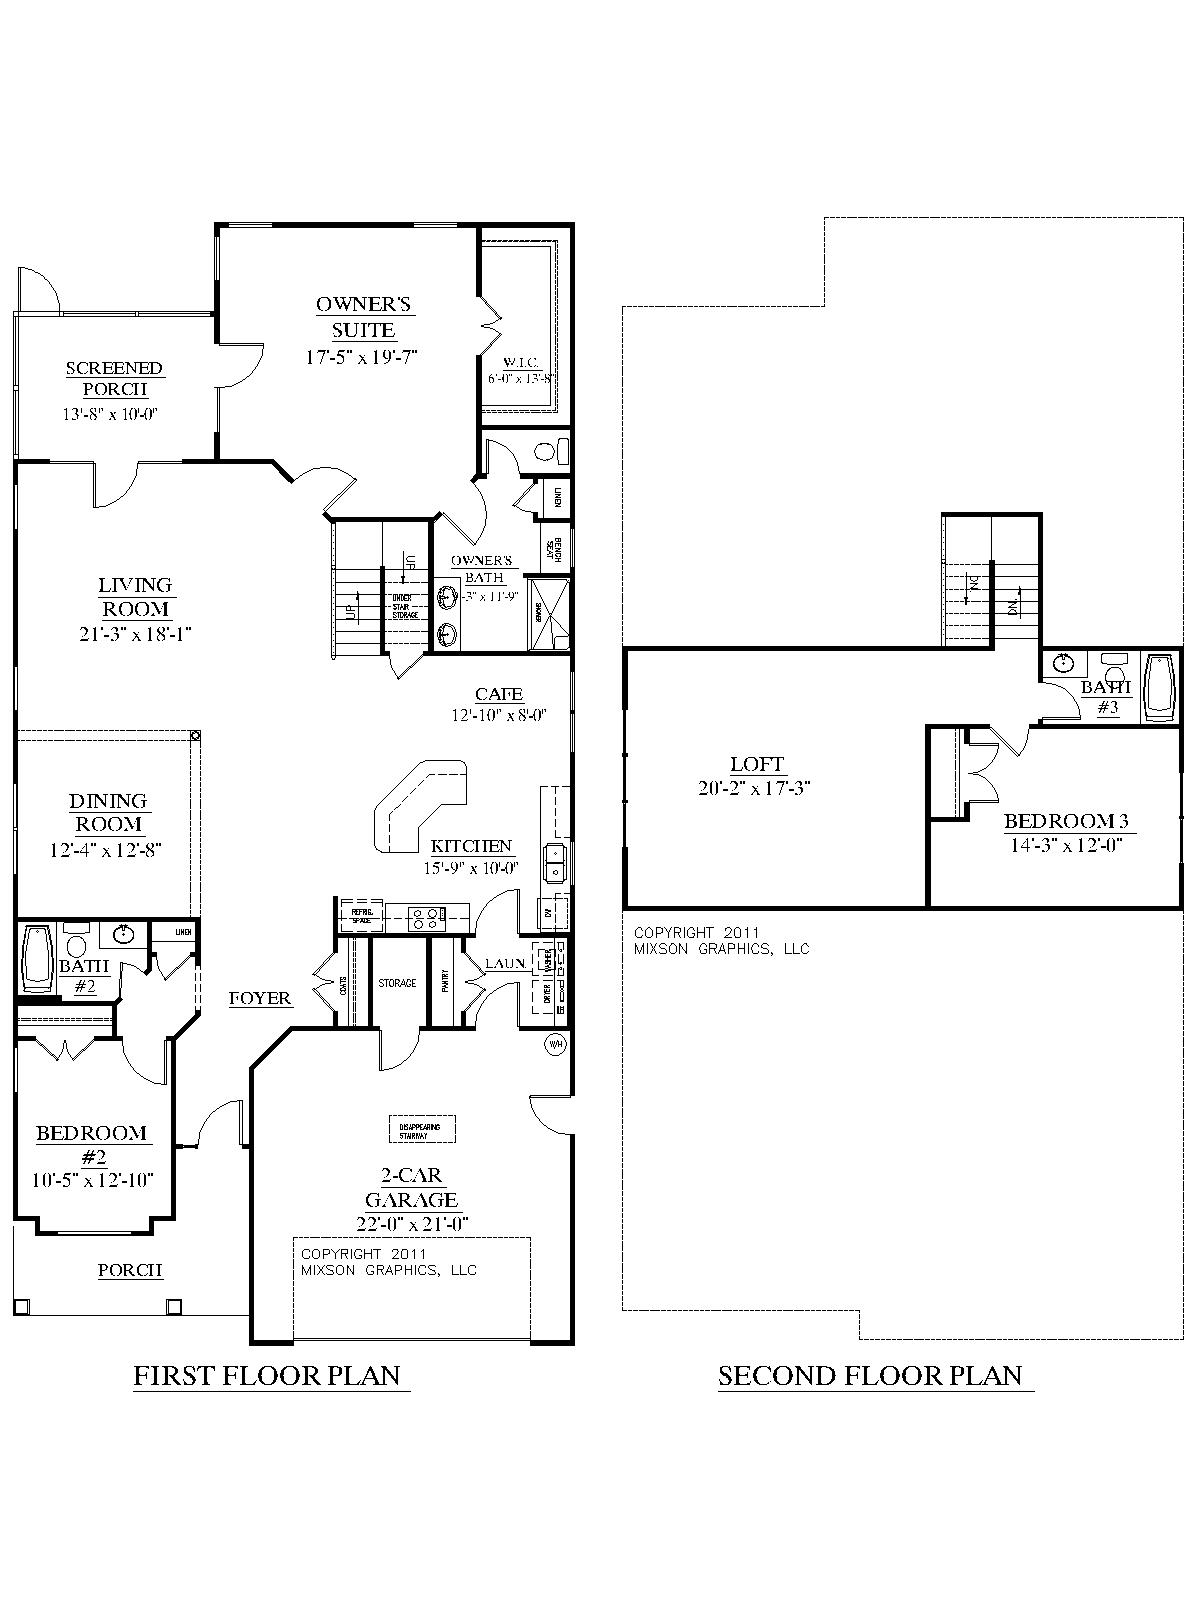 2 story house plans with bedrooms upstairs modern 2 story for 2 bedroom cabin plans with loft